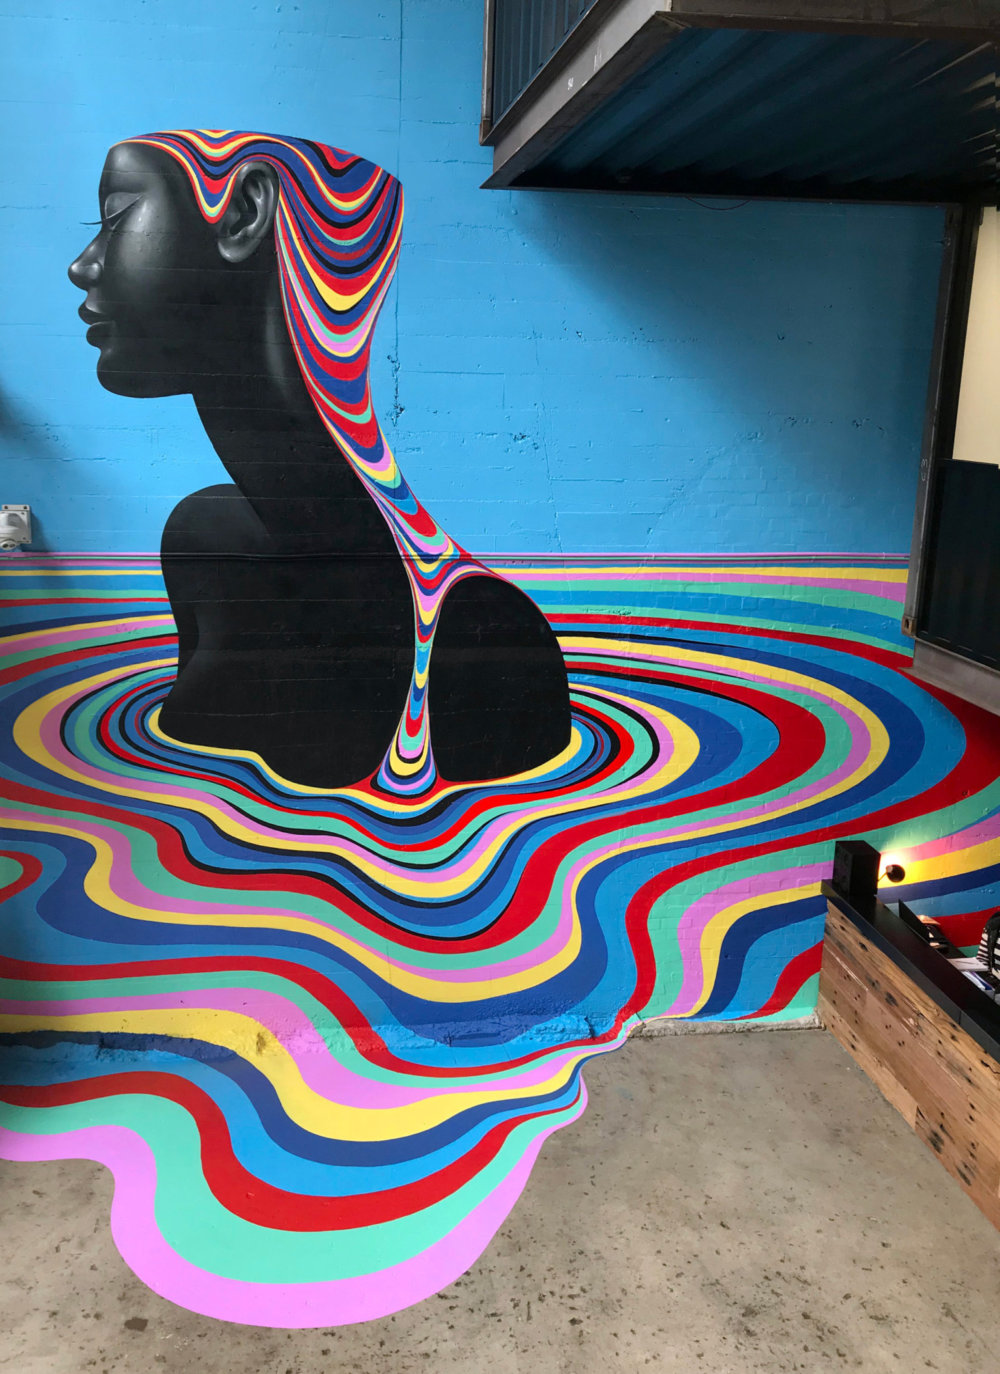 Murals Of Monochromatic Figures Pouring Colorful Fluids By Gina Kiel 1